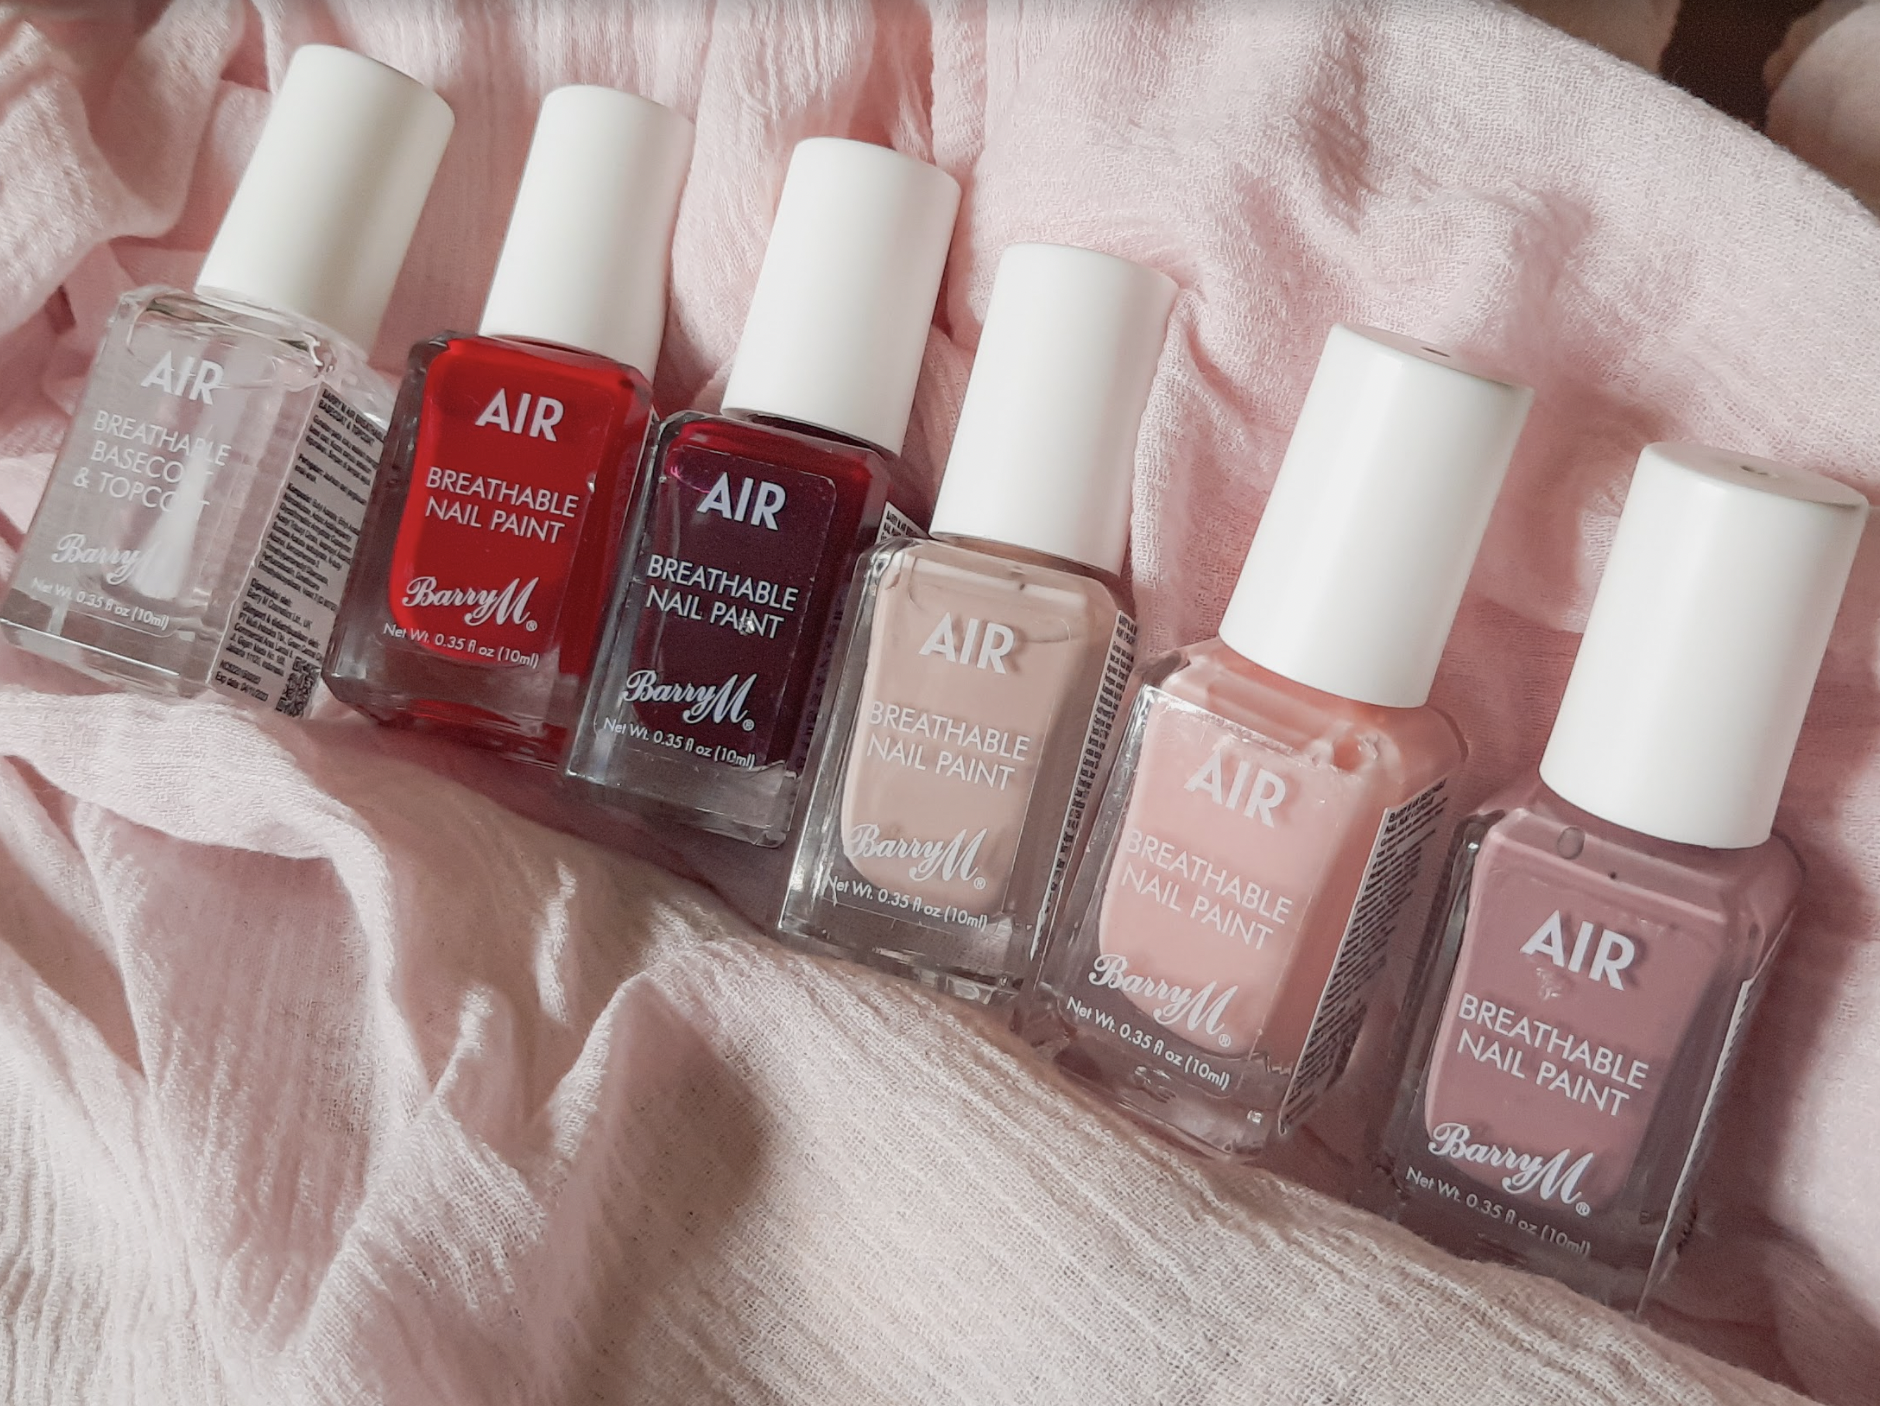 Barry M Ari Breathable Nail Paint